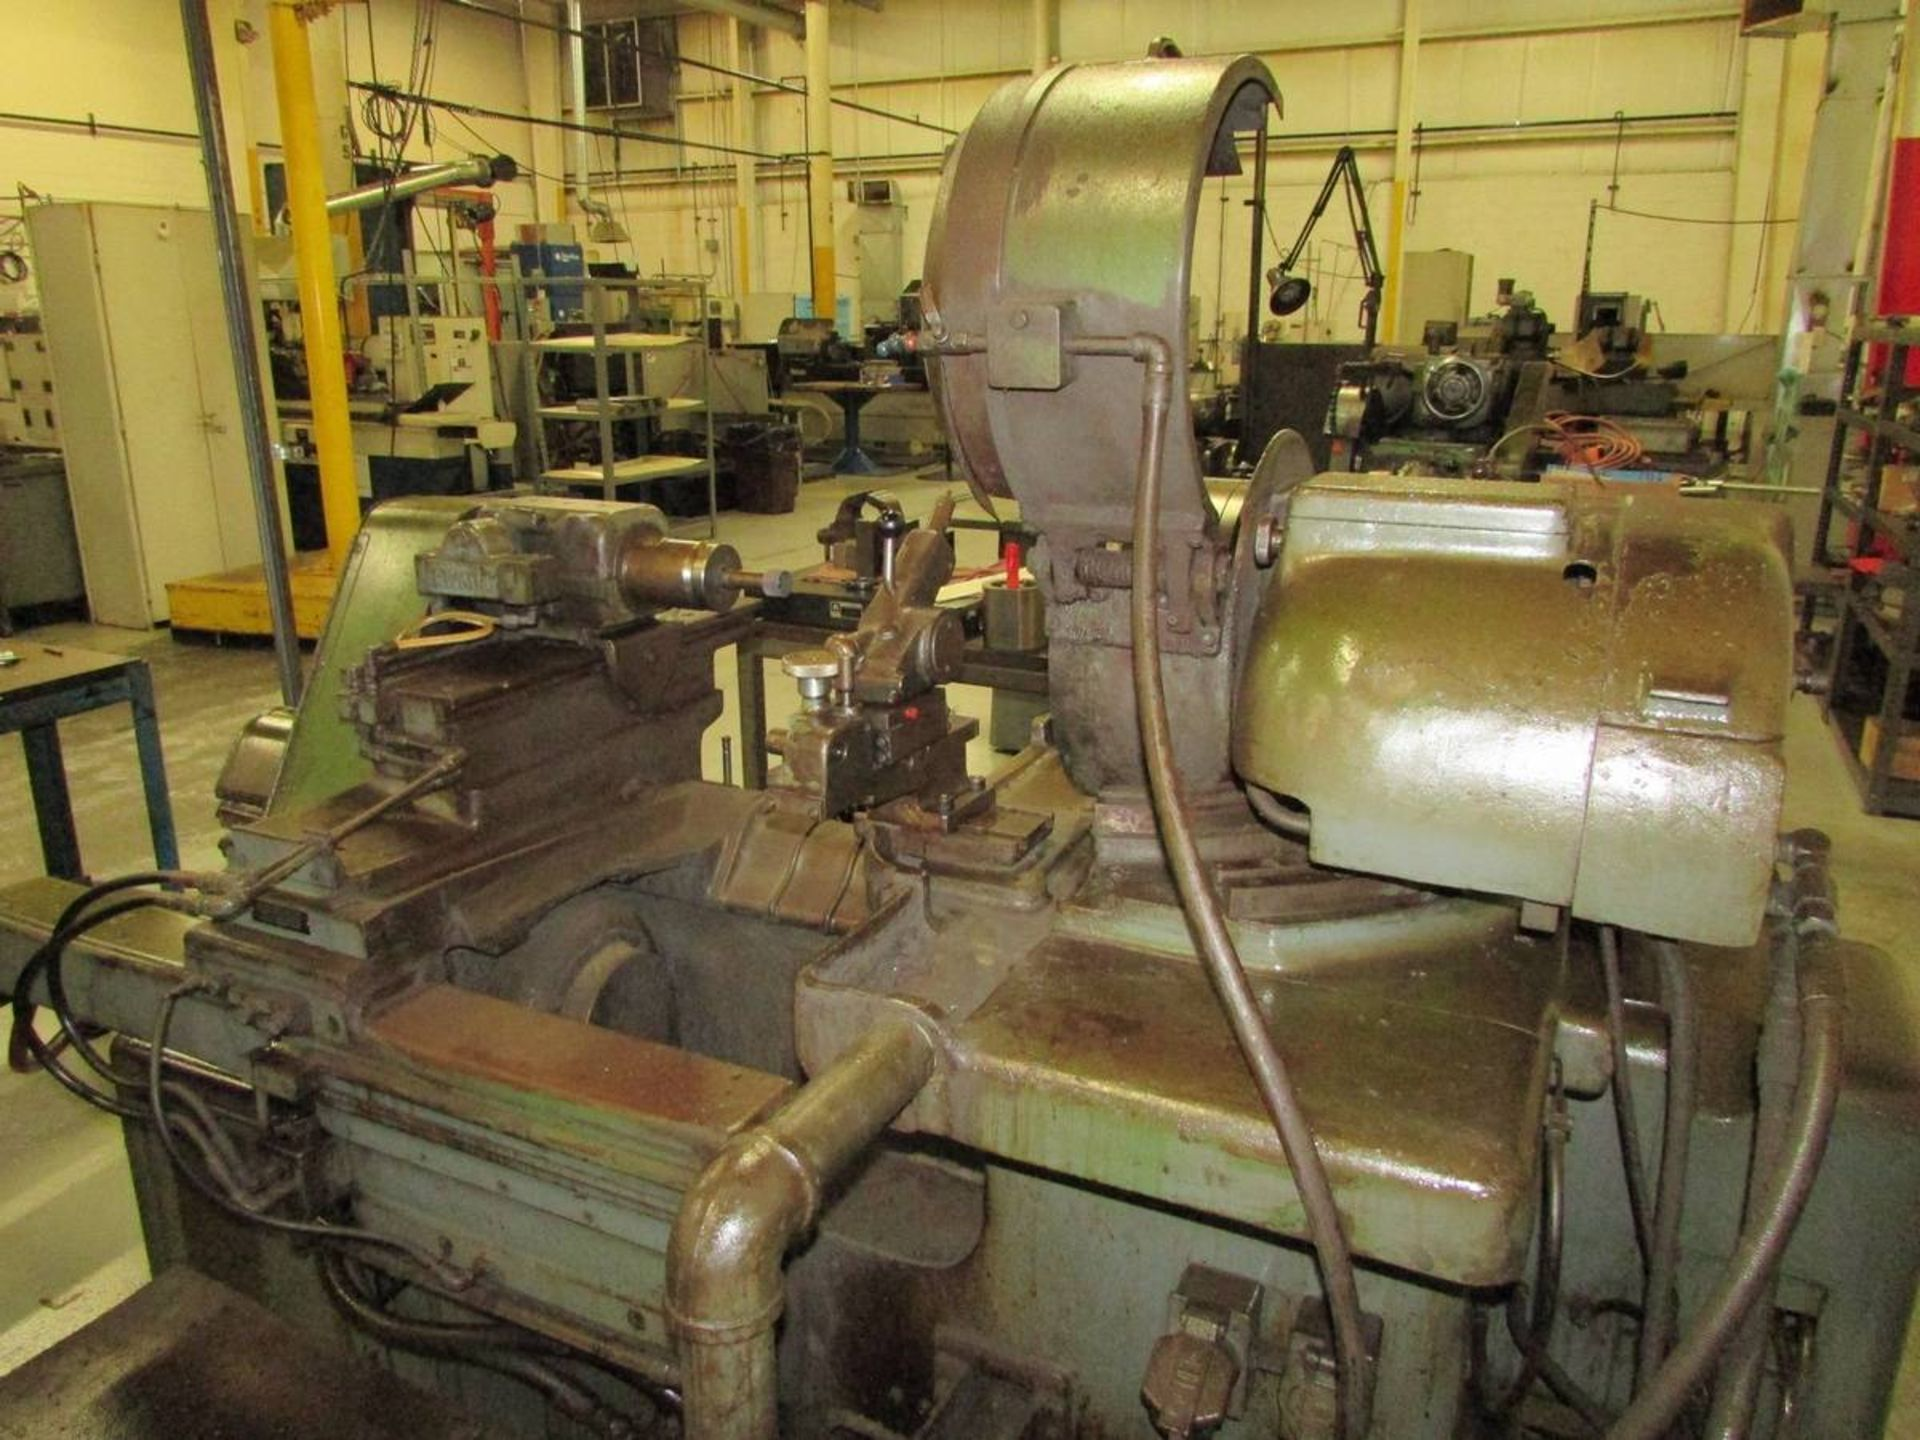 1981 Bryant 1116 ID Cylindrical Grinder - Image 16 of 20